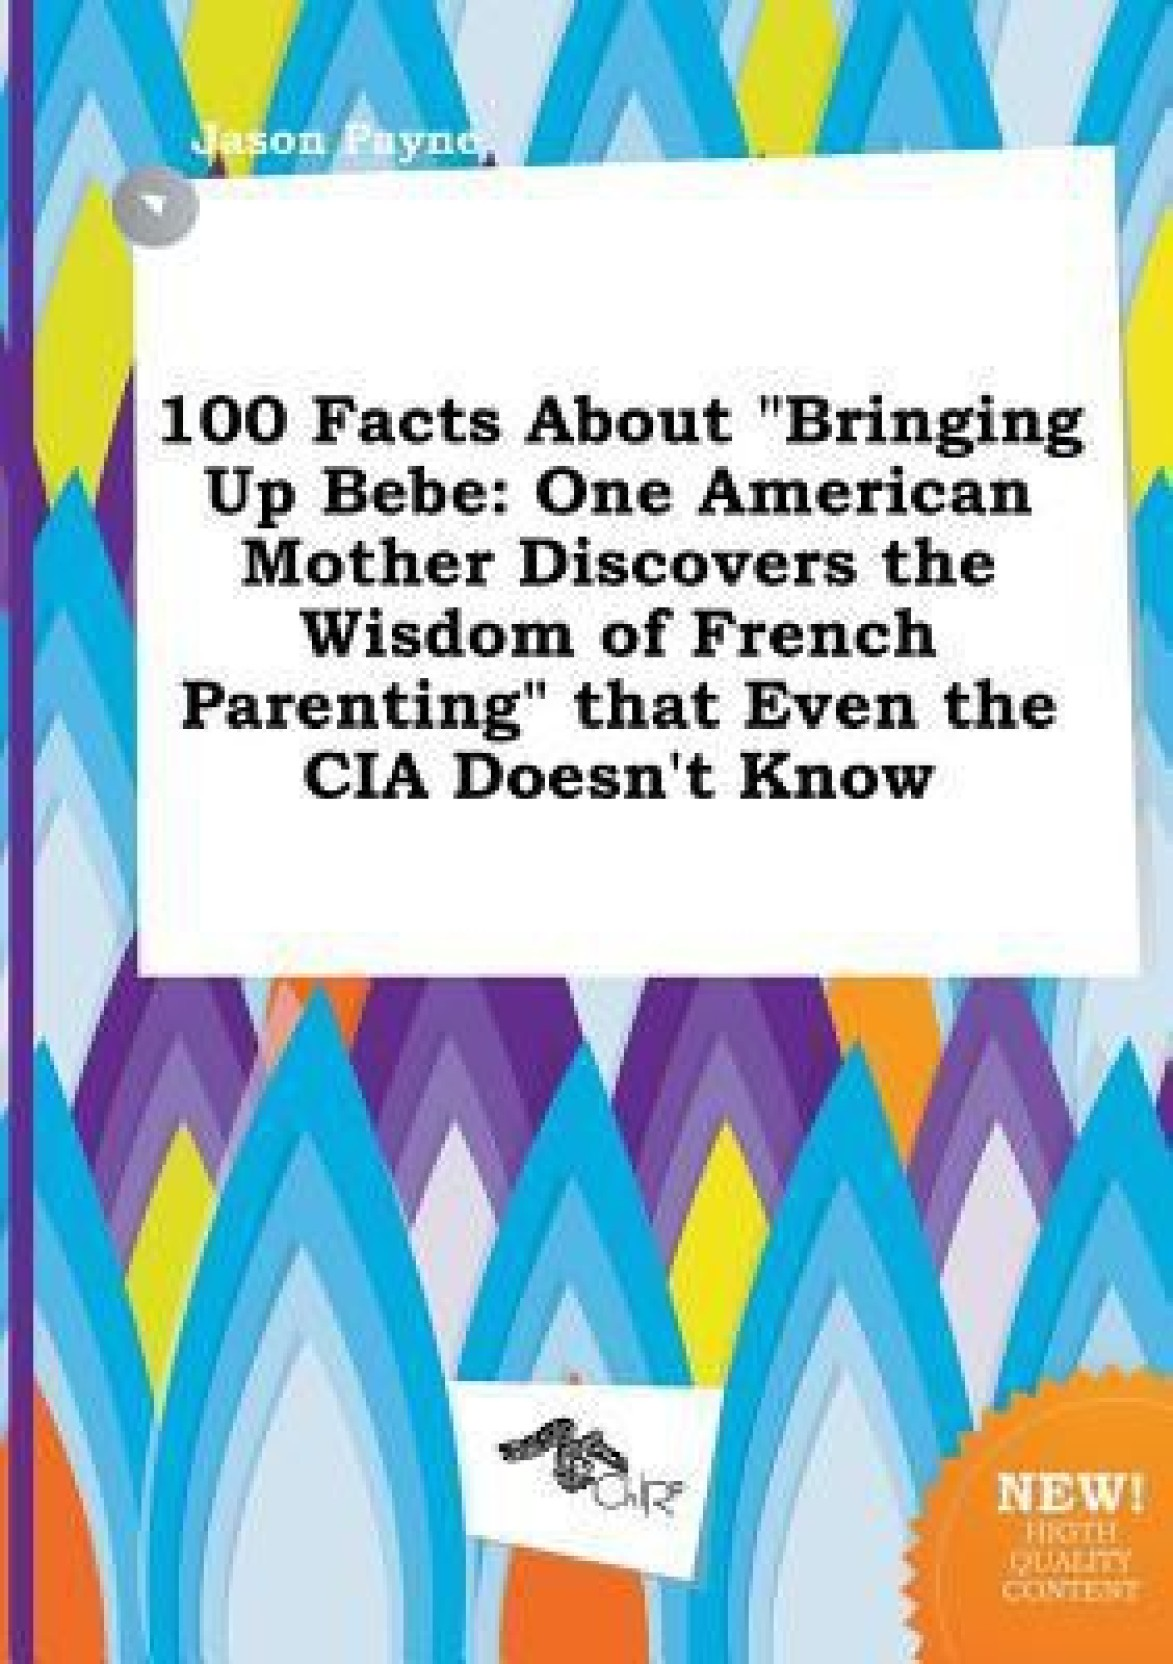 100 Facts about Bringing Up Bebe: One American Mother Discovers the